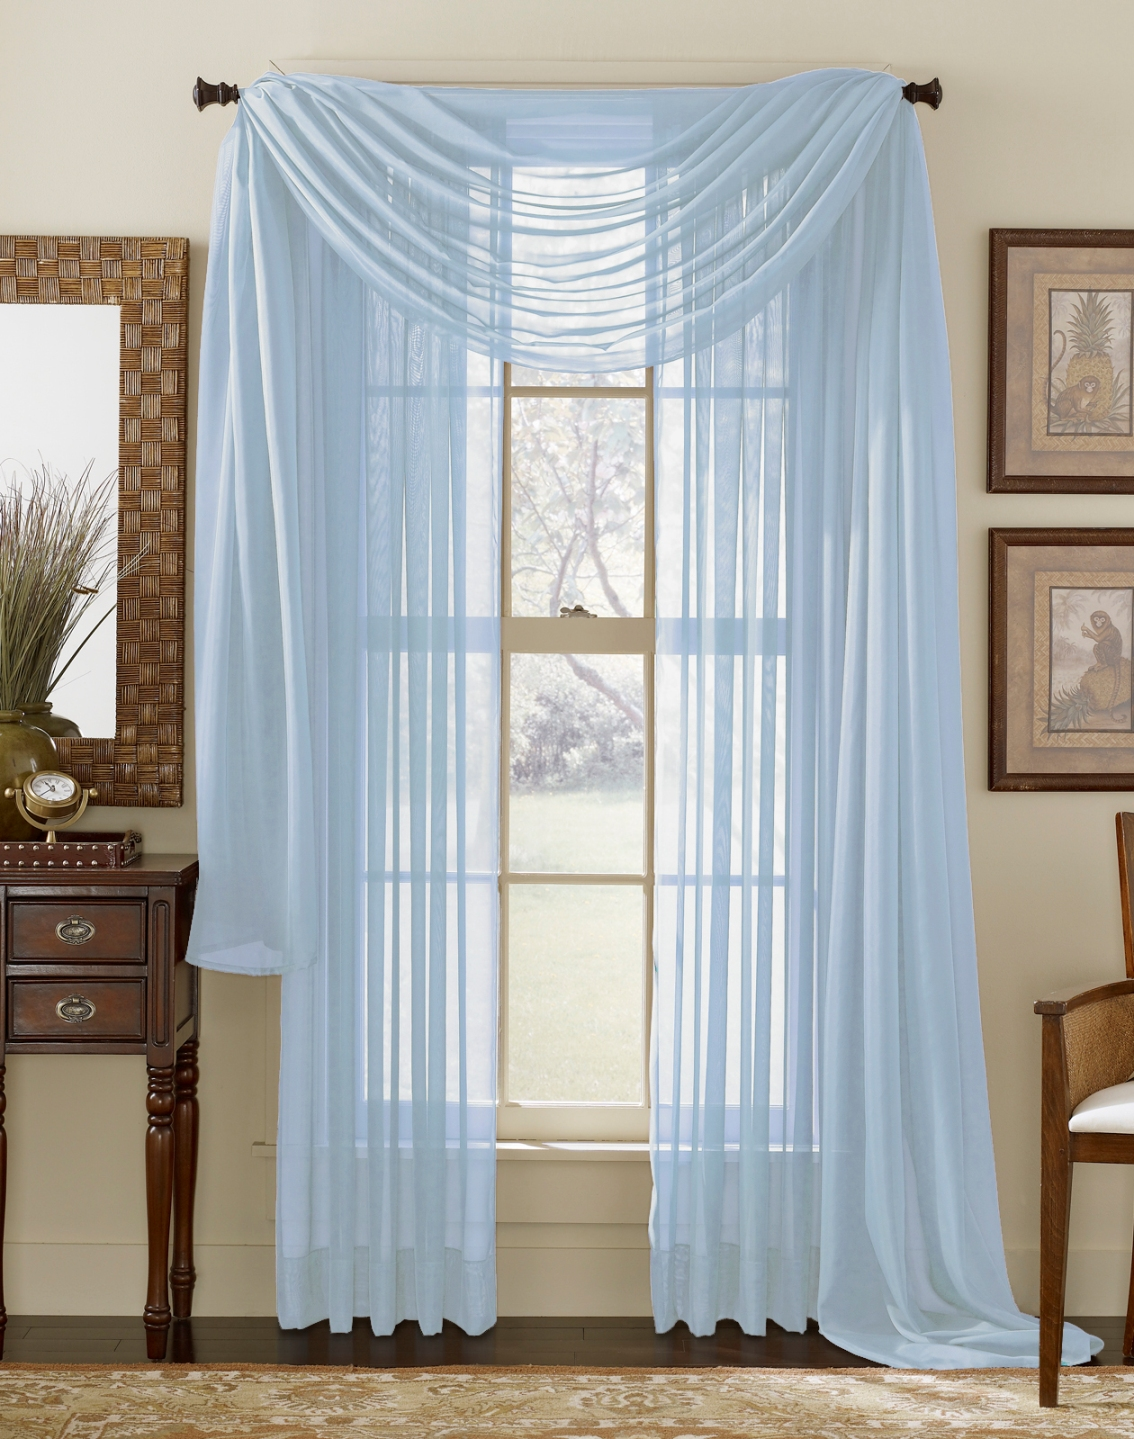 How To Choose Curtain Color Teal Blue Sheer Curtains